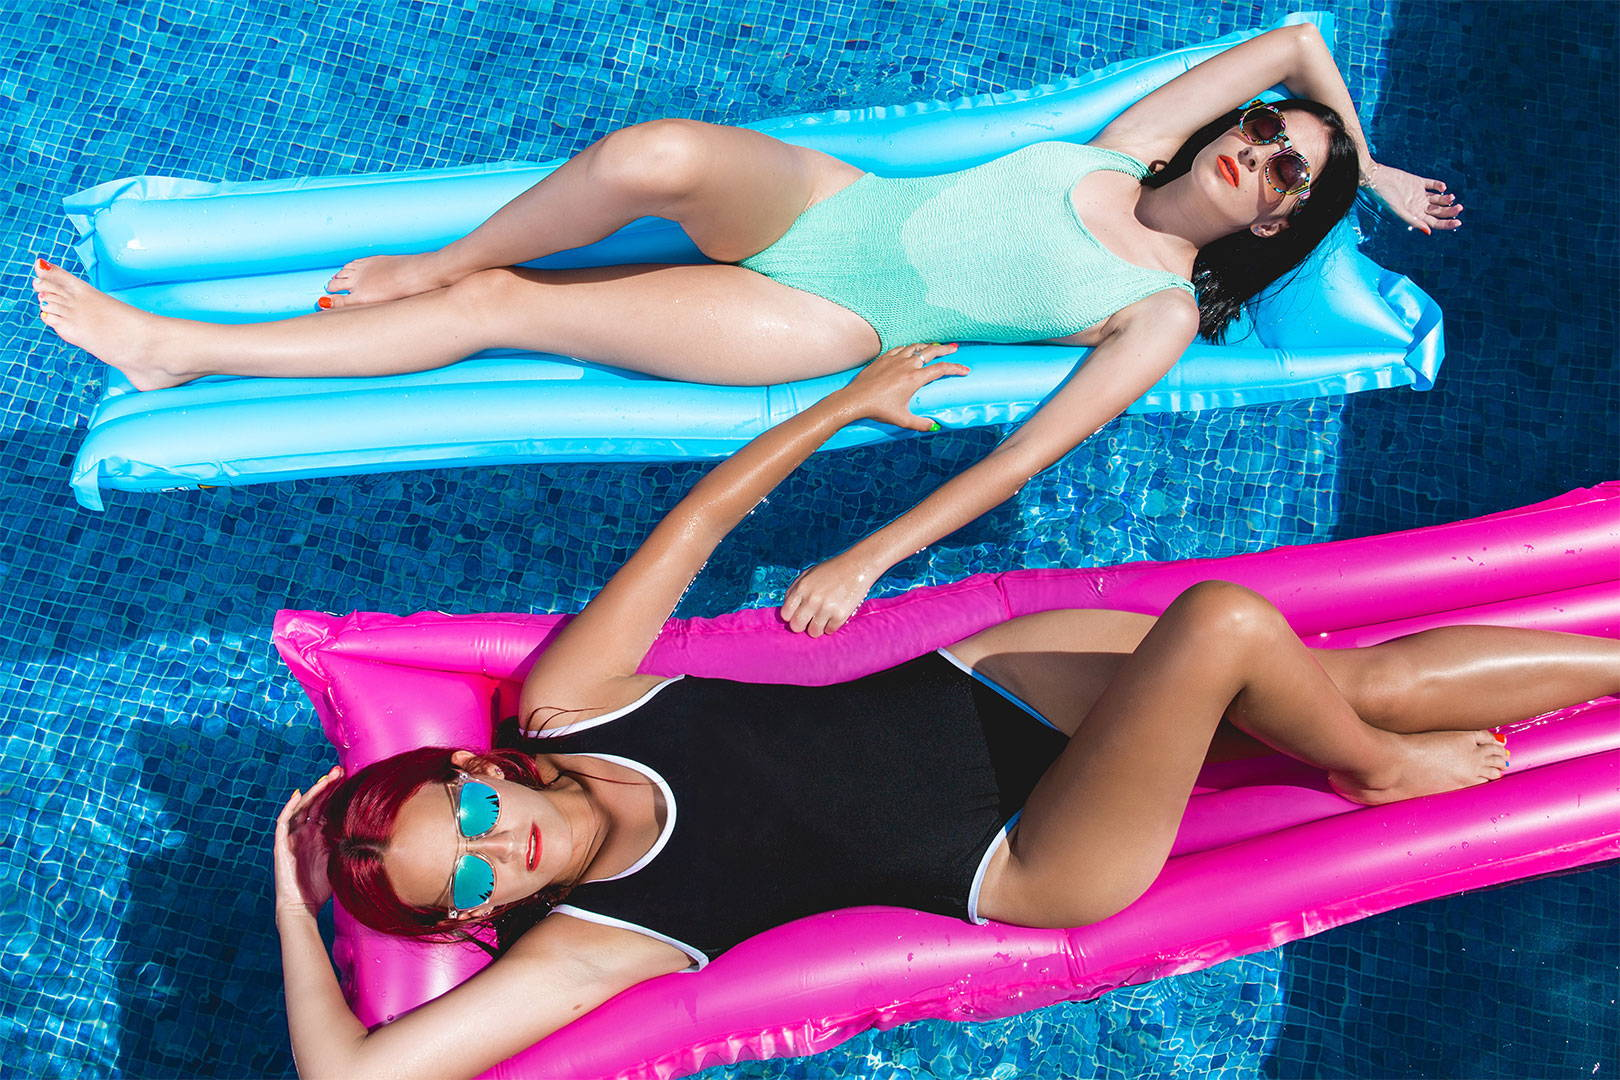 two girls in swimsuit in a pool floating